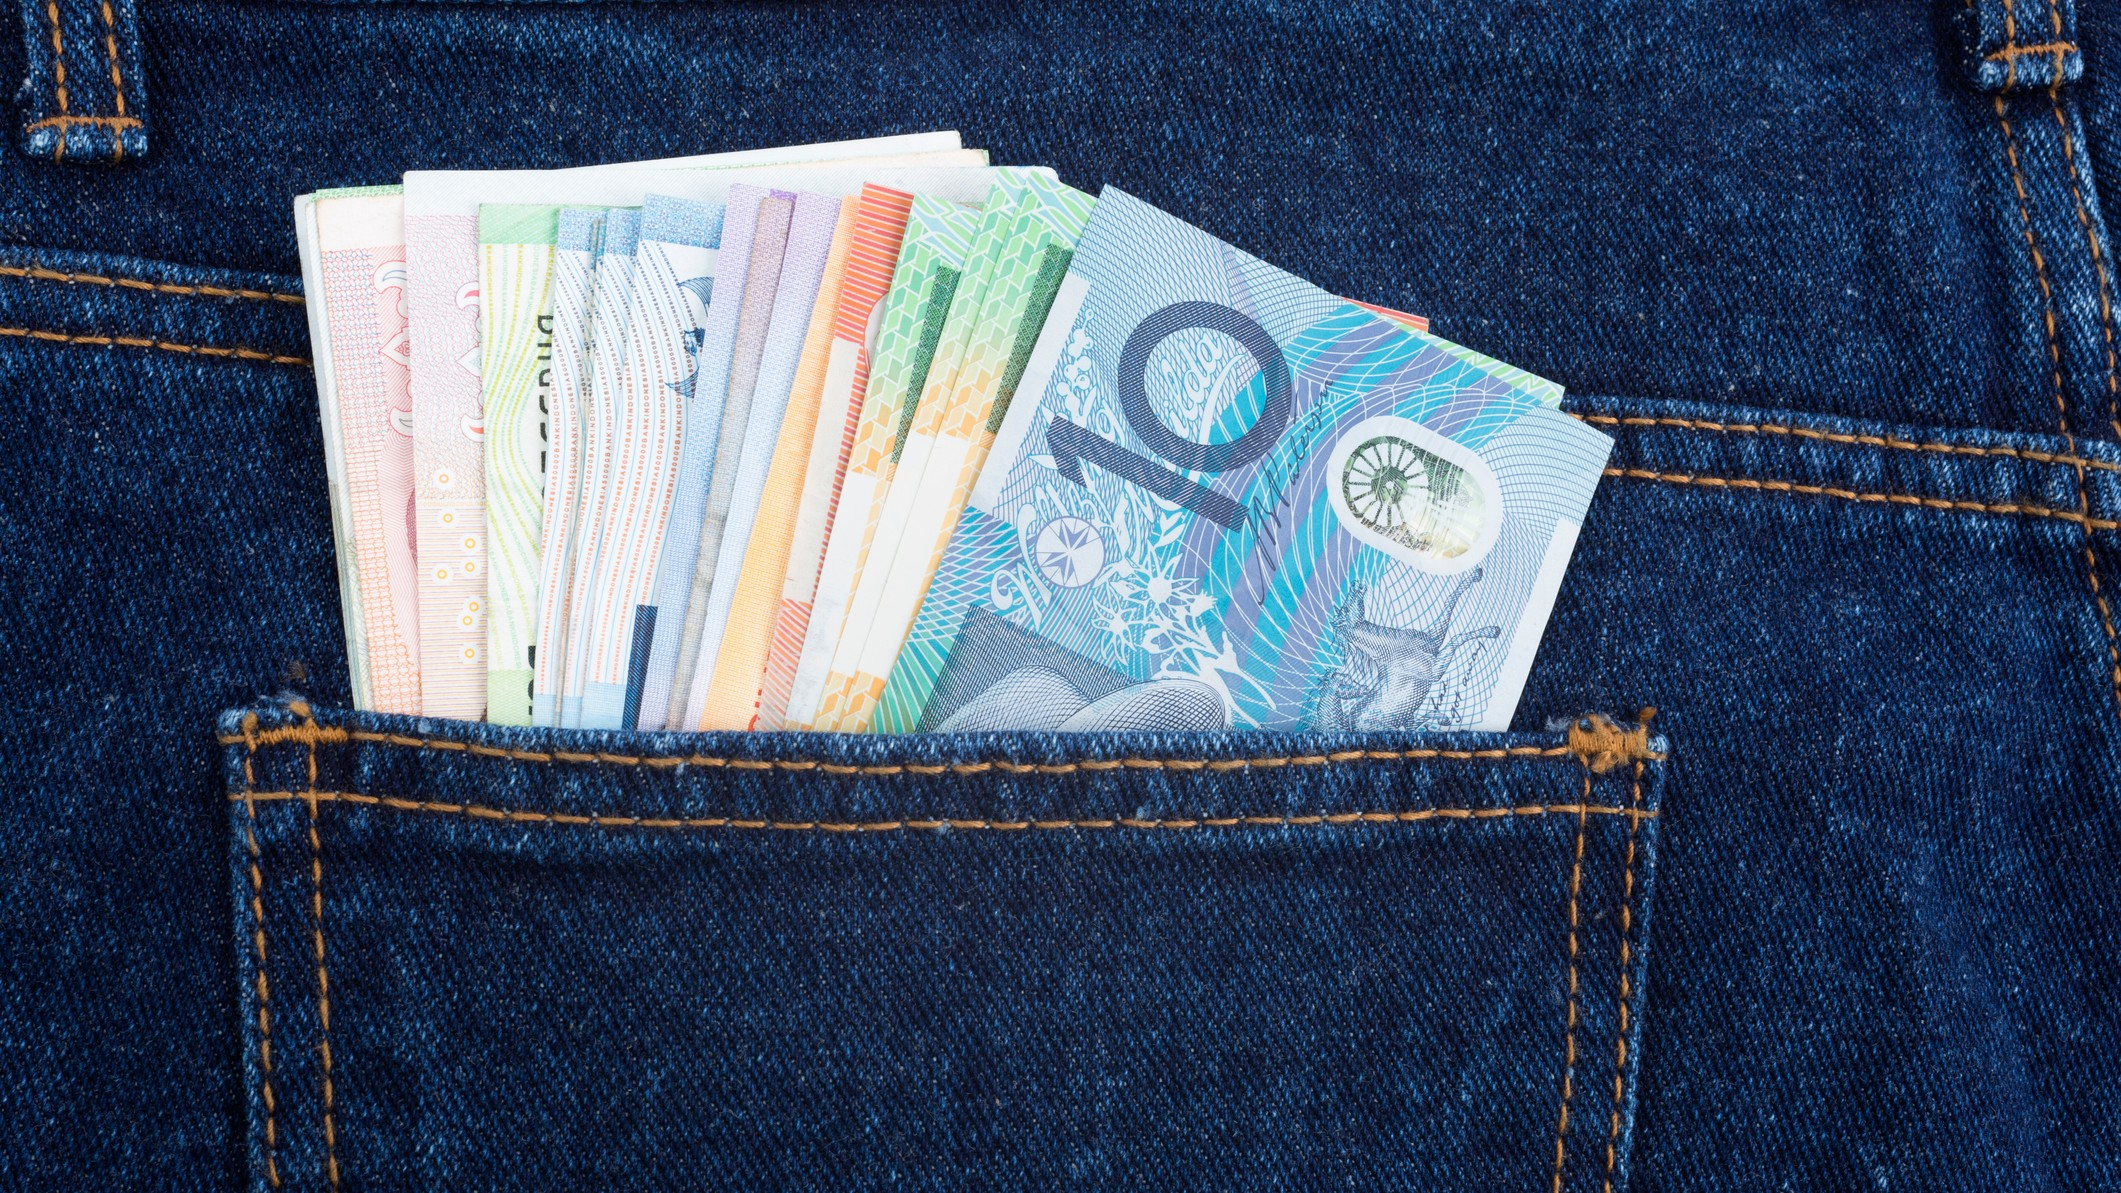 ASX dividend shares represented by cash in jeans back pocket